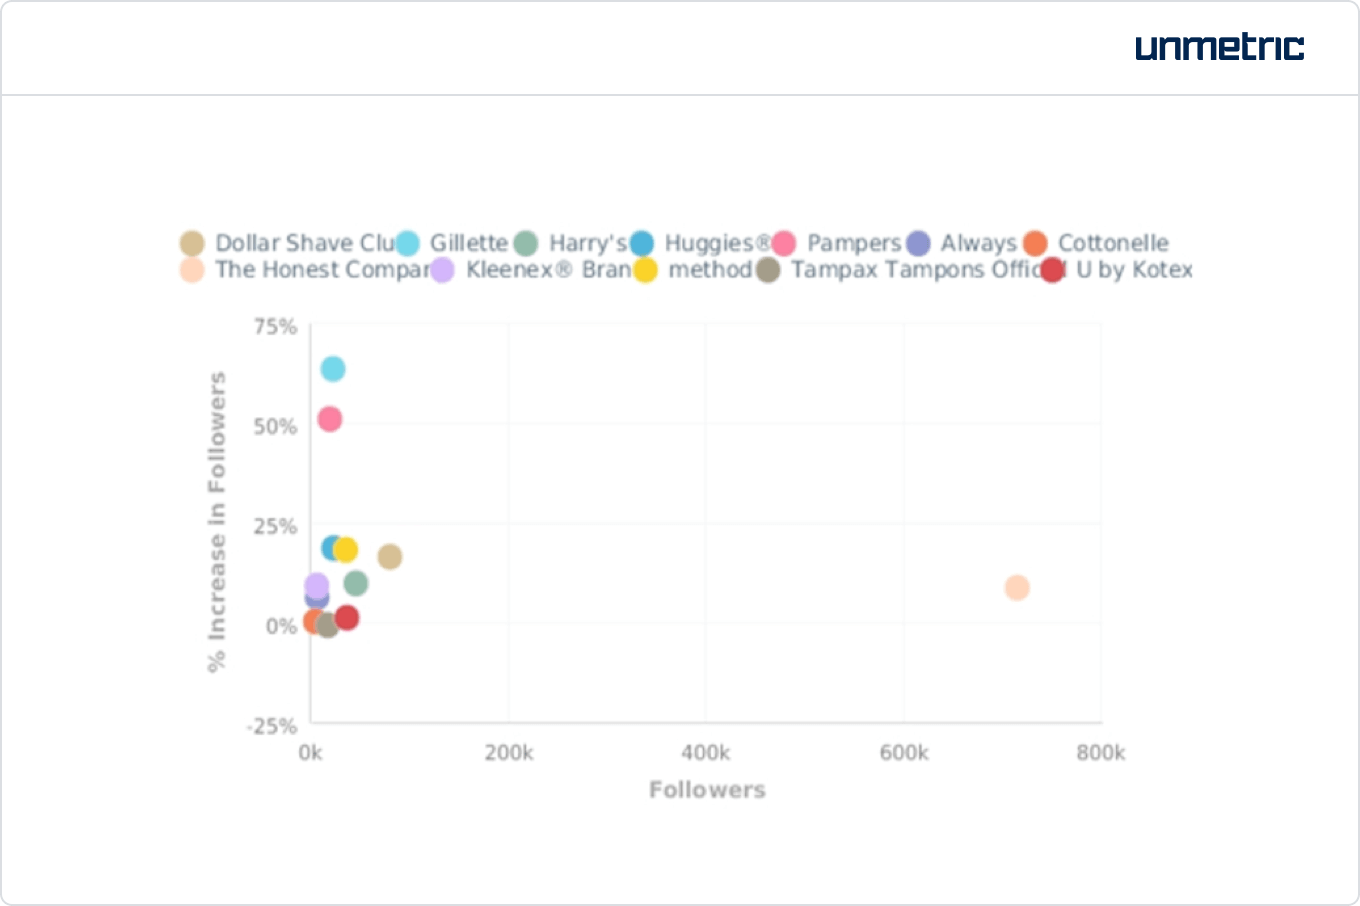 The number of followers and growth rate for each CPG brand